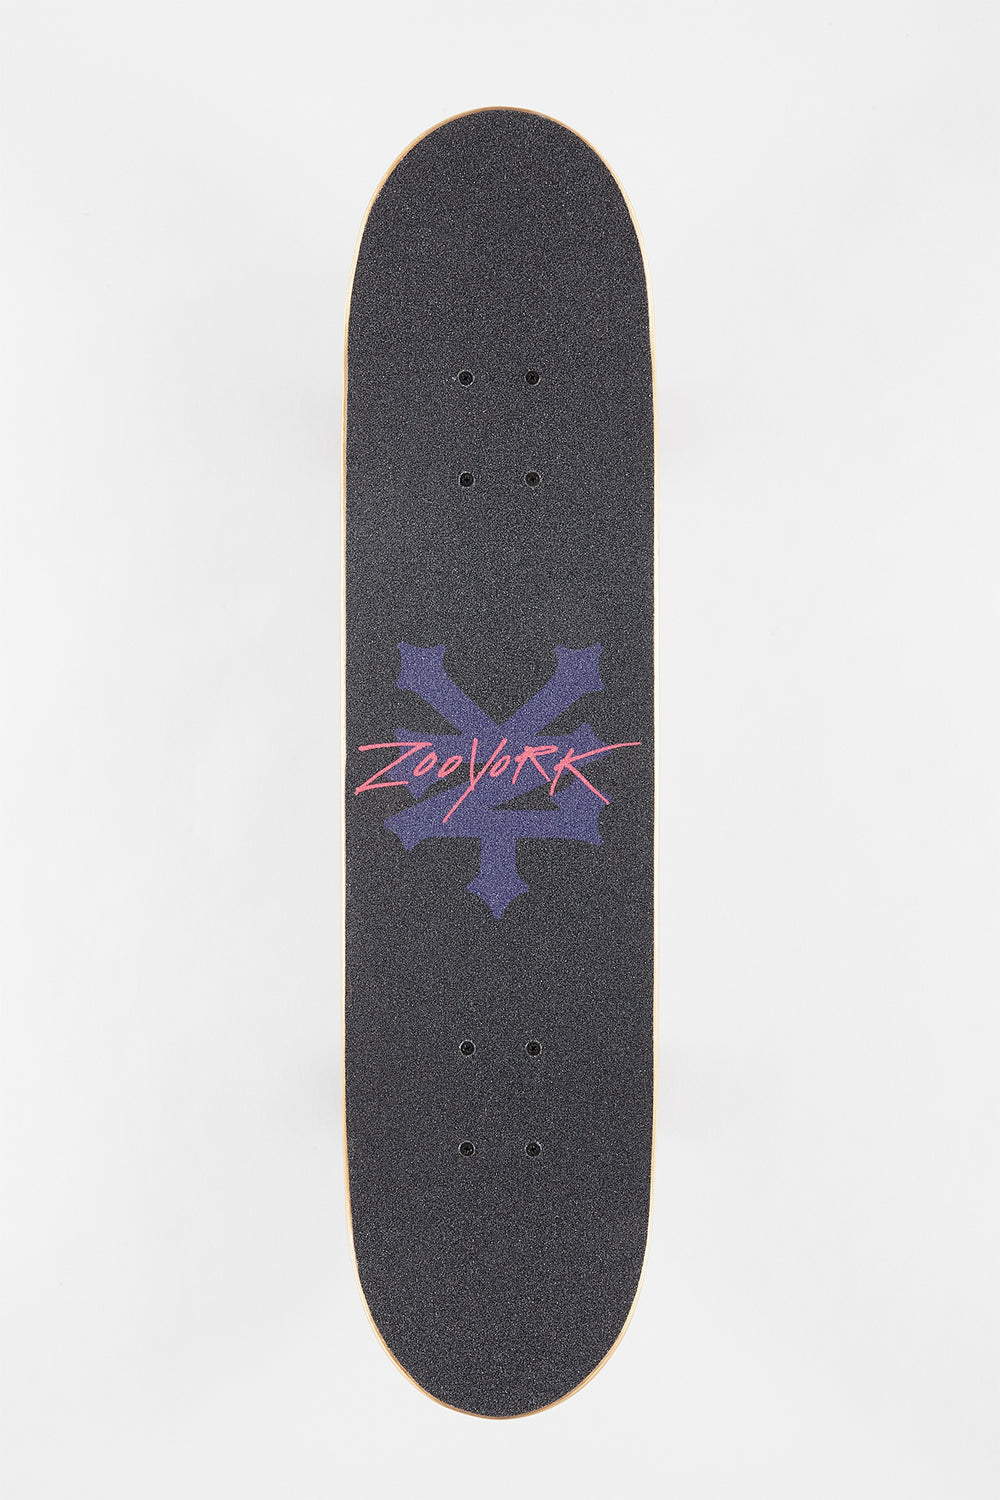 Skateboard Squelette Zoo York 7.75